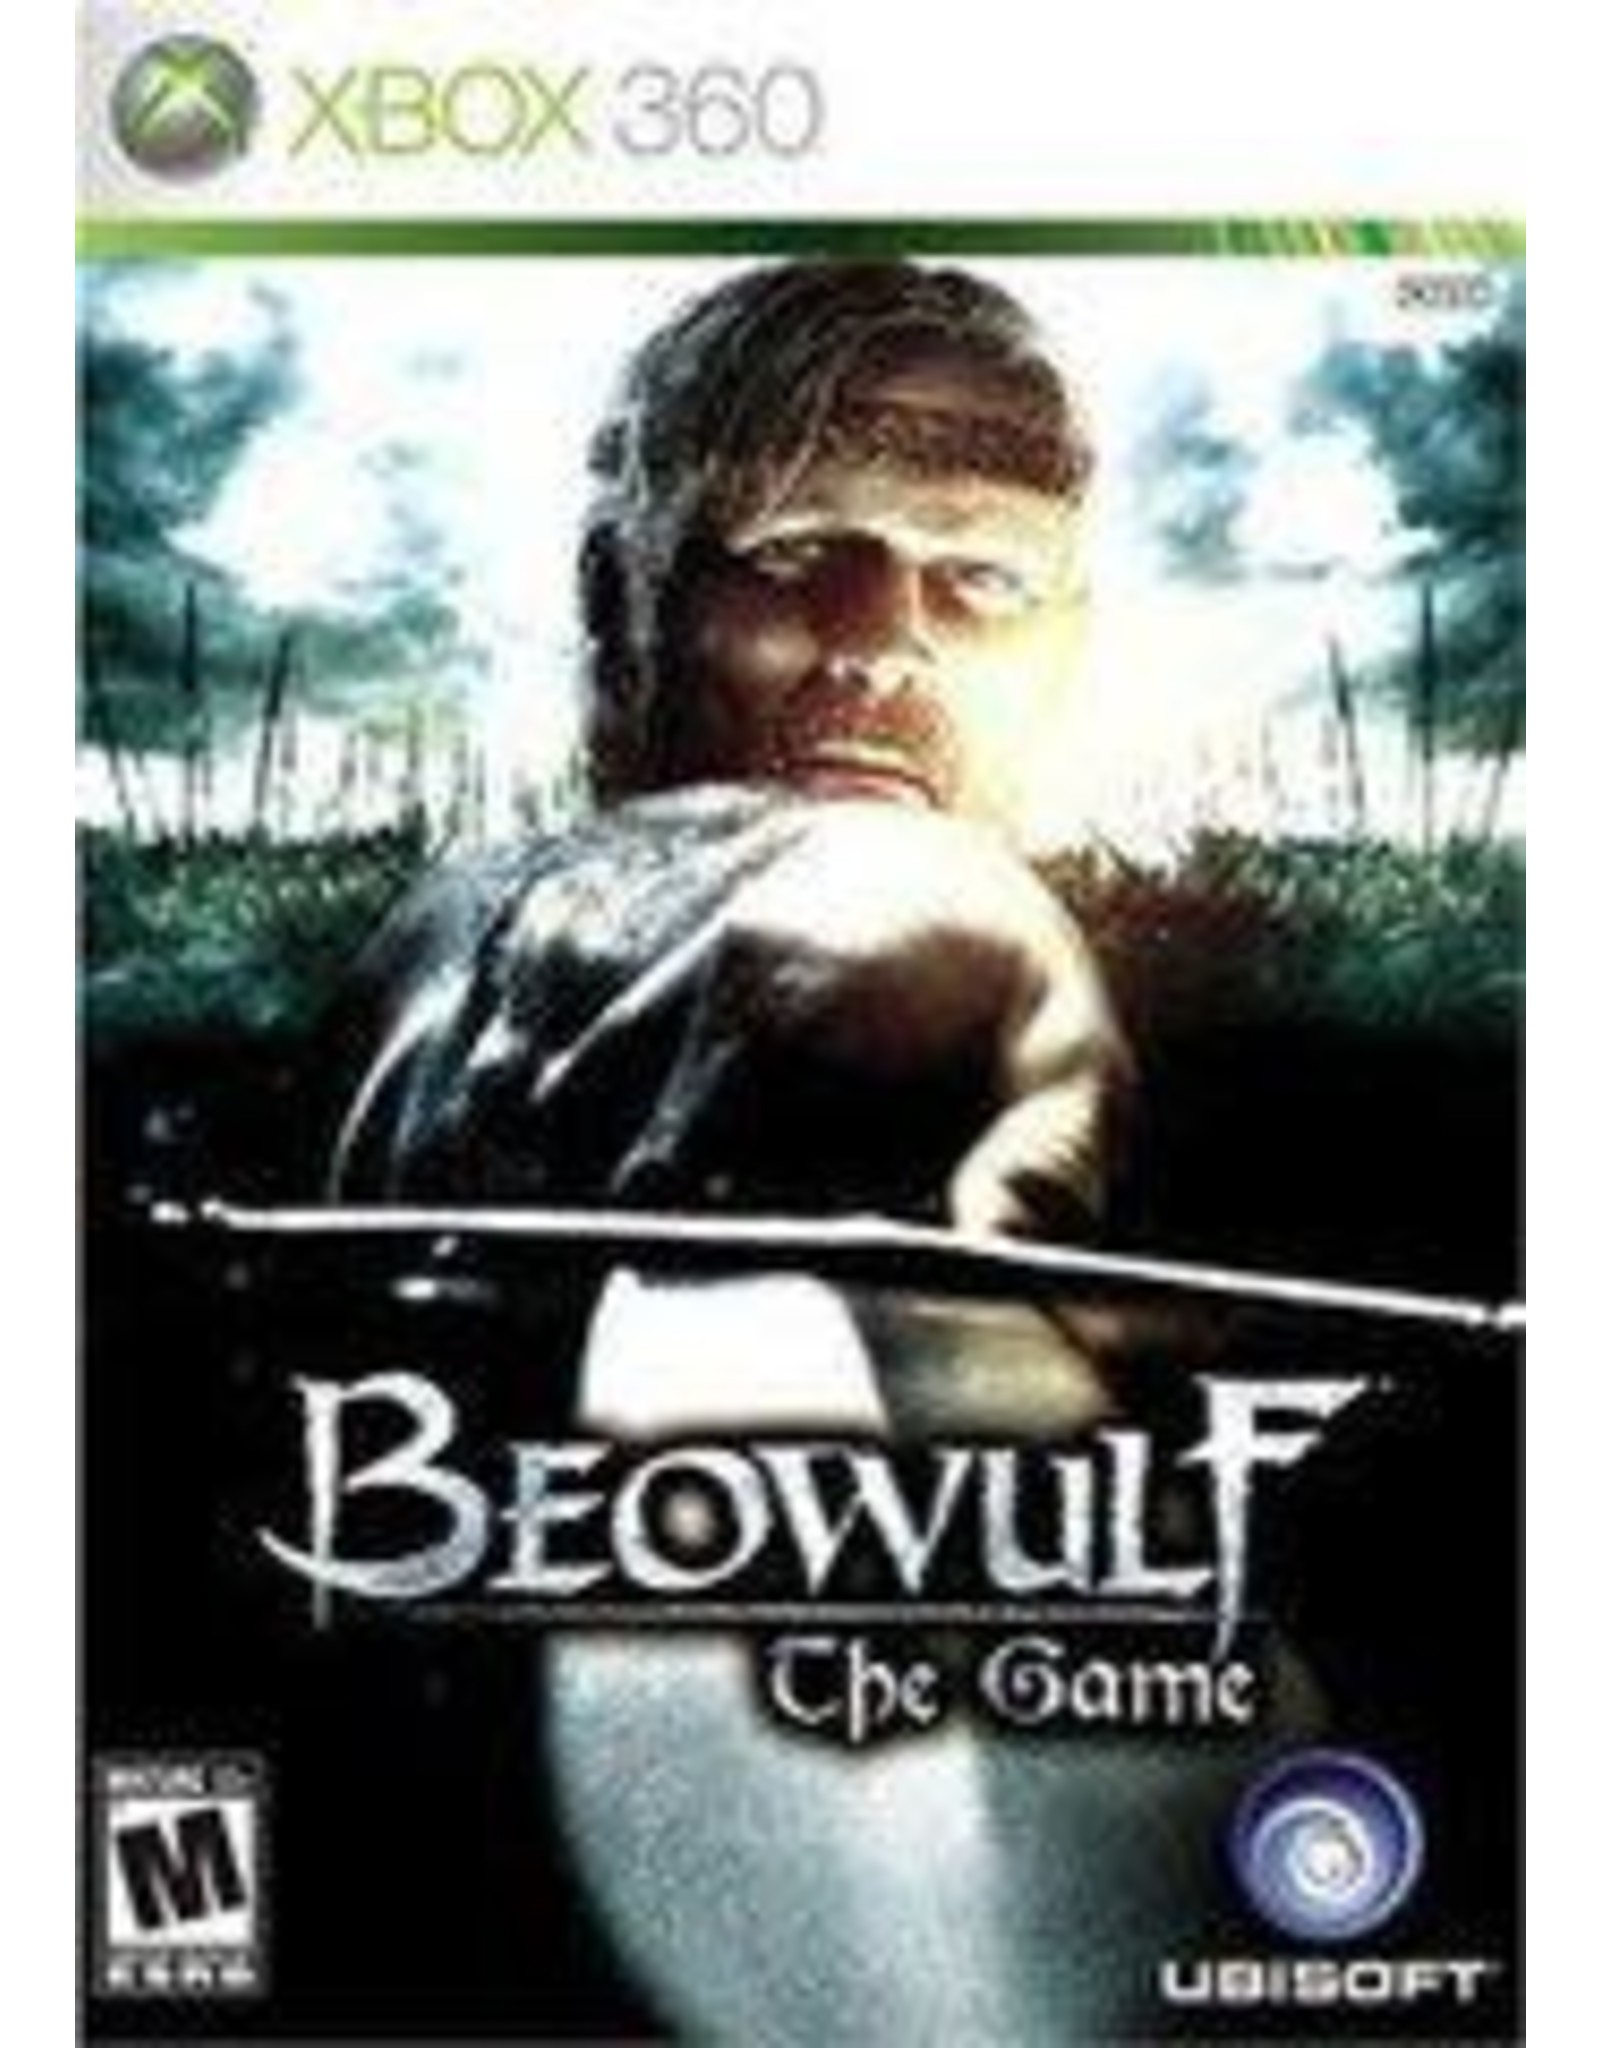 Xbox 360 Beowulf The Game